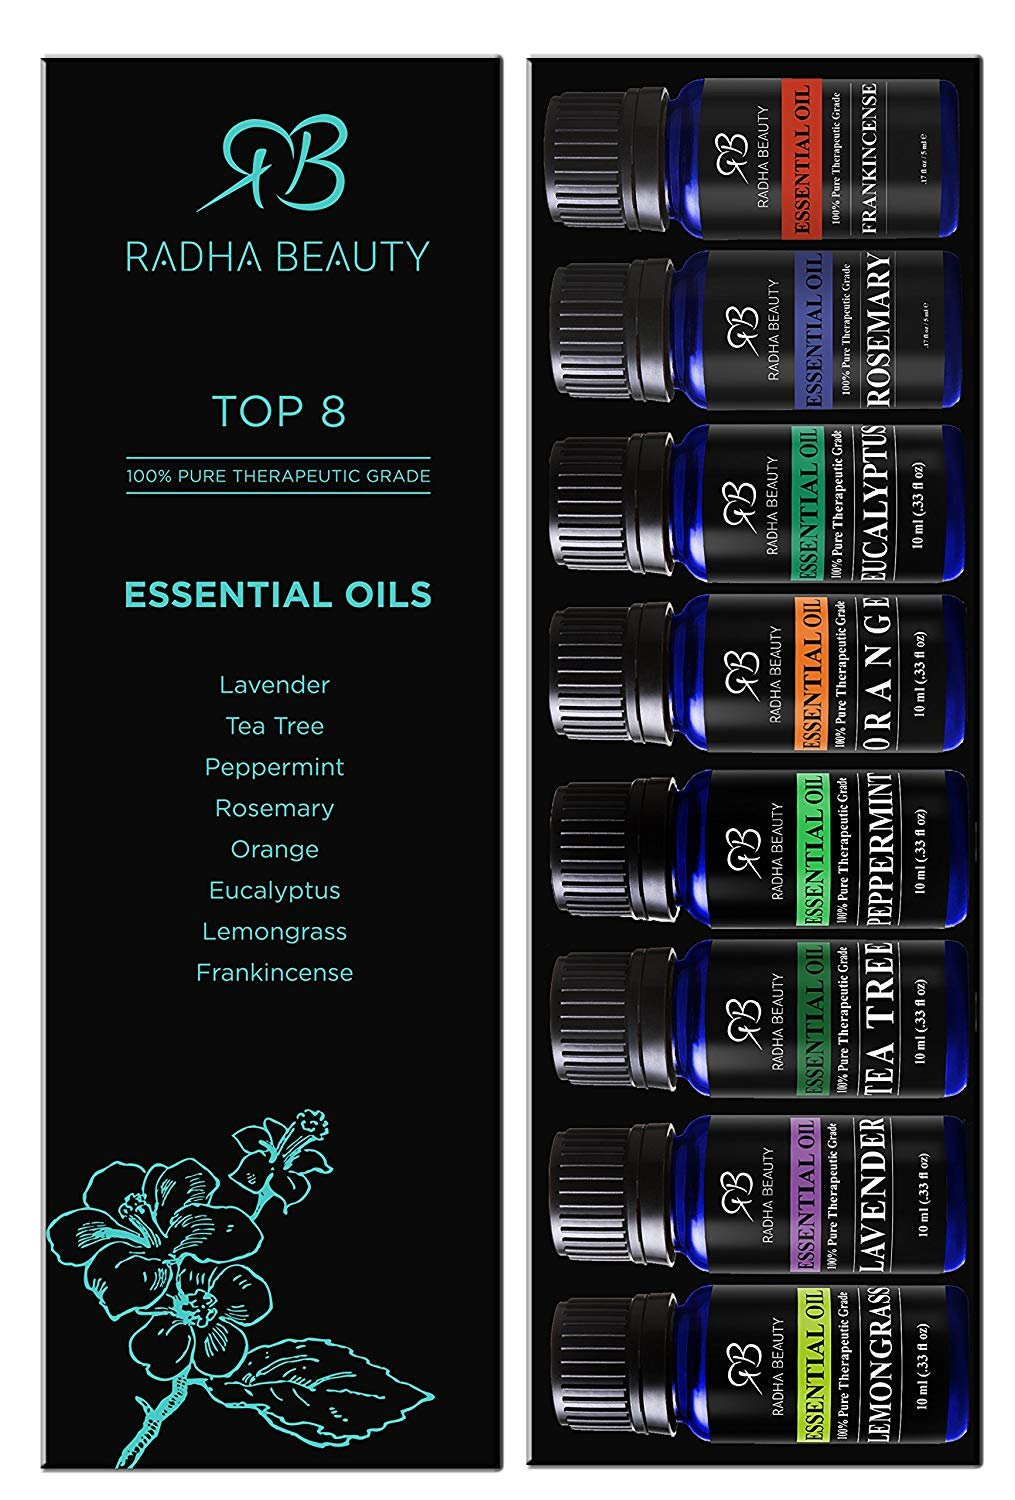 Radha Beauty Aromatherapy Top 8 Essential Oils 100% Pure & Therapeutic grade - Basic Sampler Gift Set & Kit (Lavender, Tea Tree, Eucalyptus, Lemongrass, Orange, Peppermint, Frankincense and Rosemary) by Radha Beauty (Image #2)